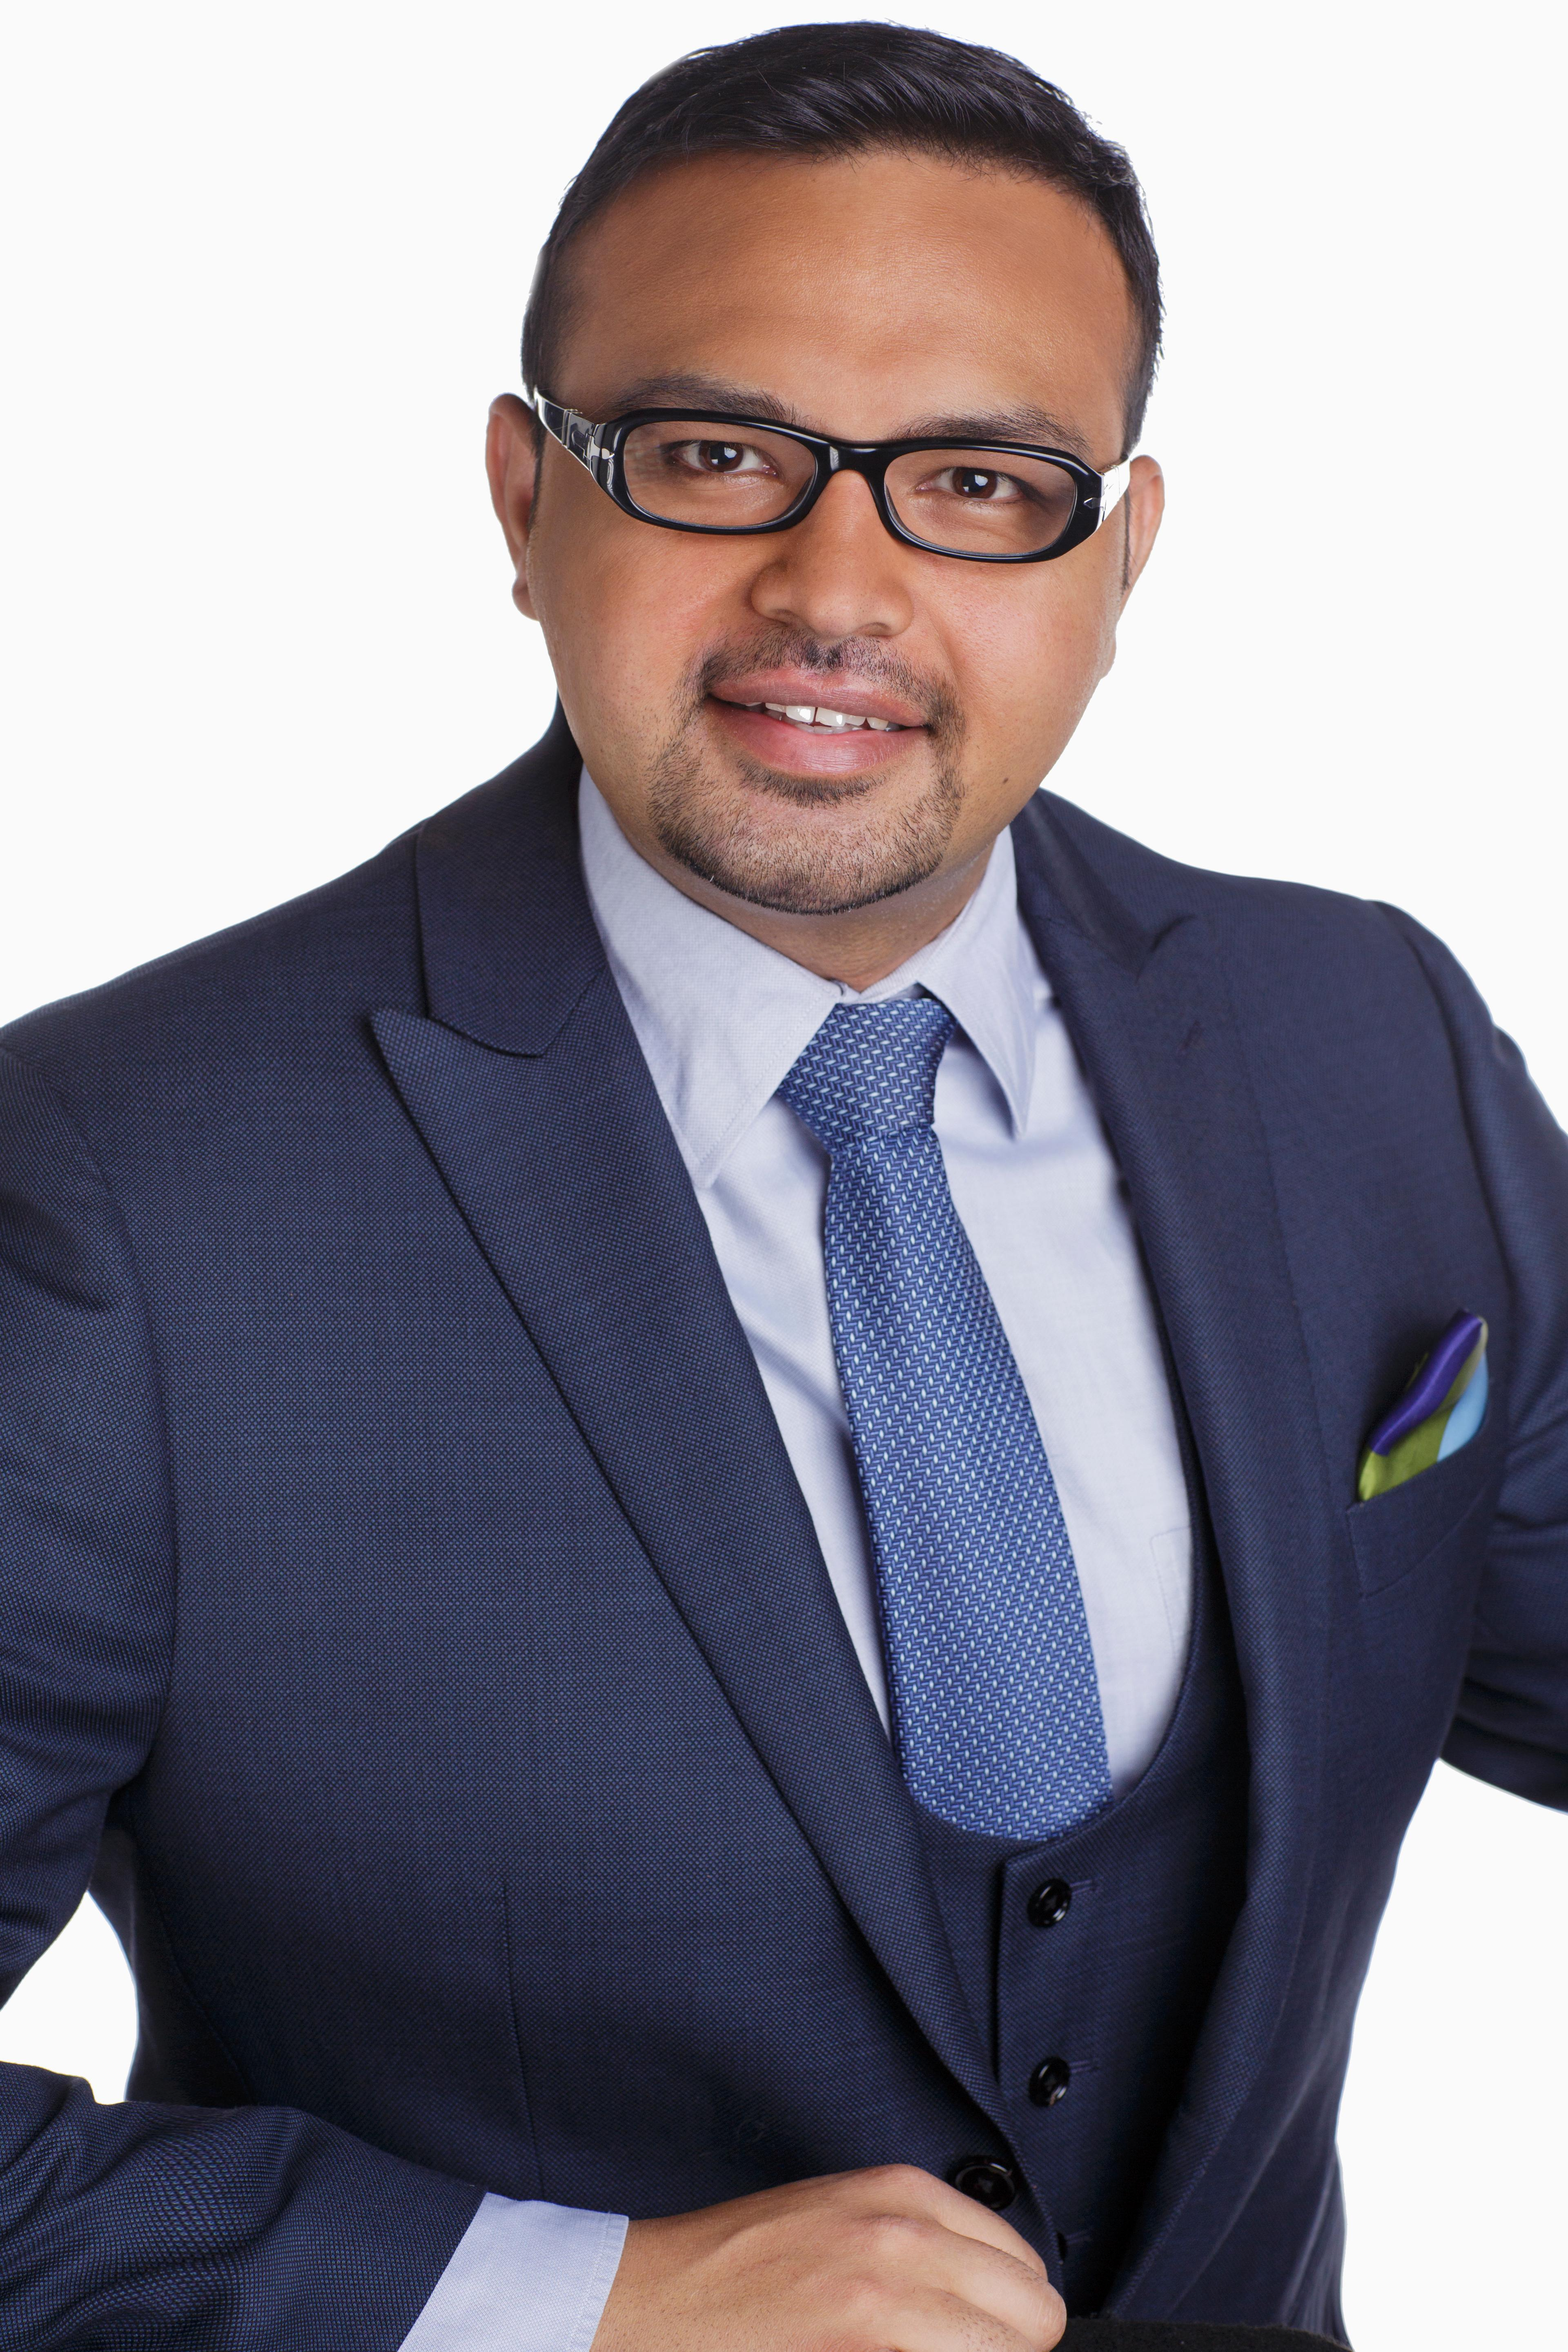 Danyal Syed with Douglas Elliman